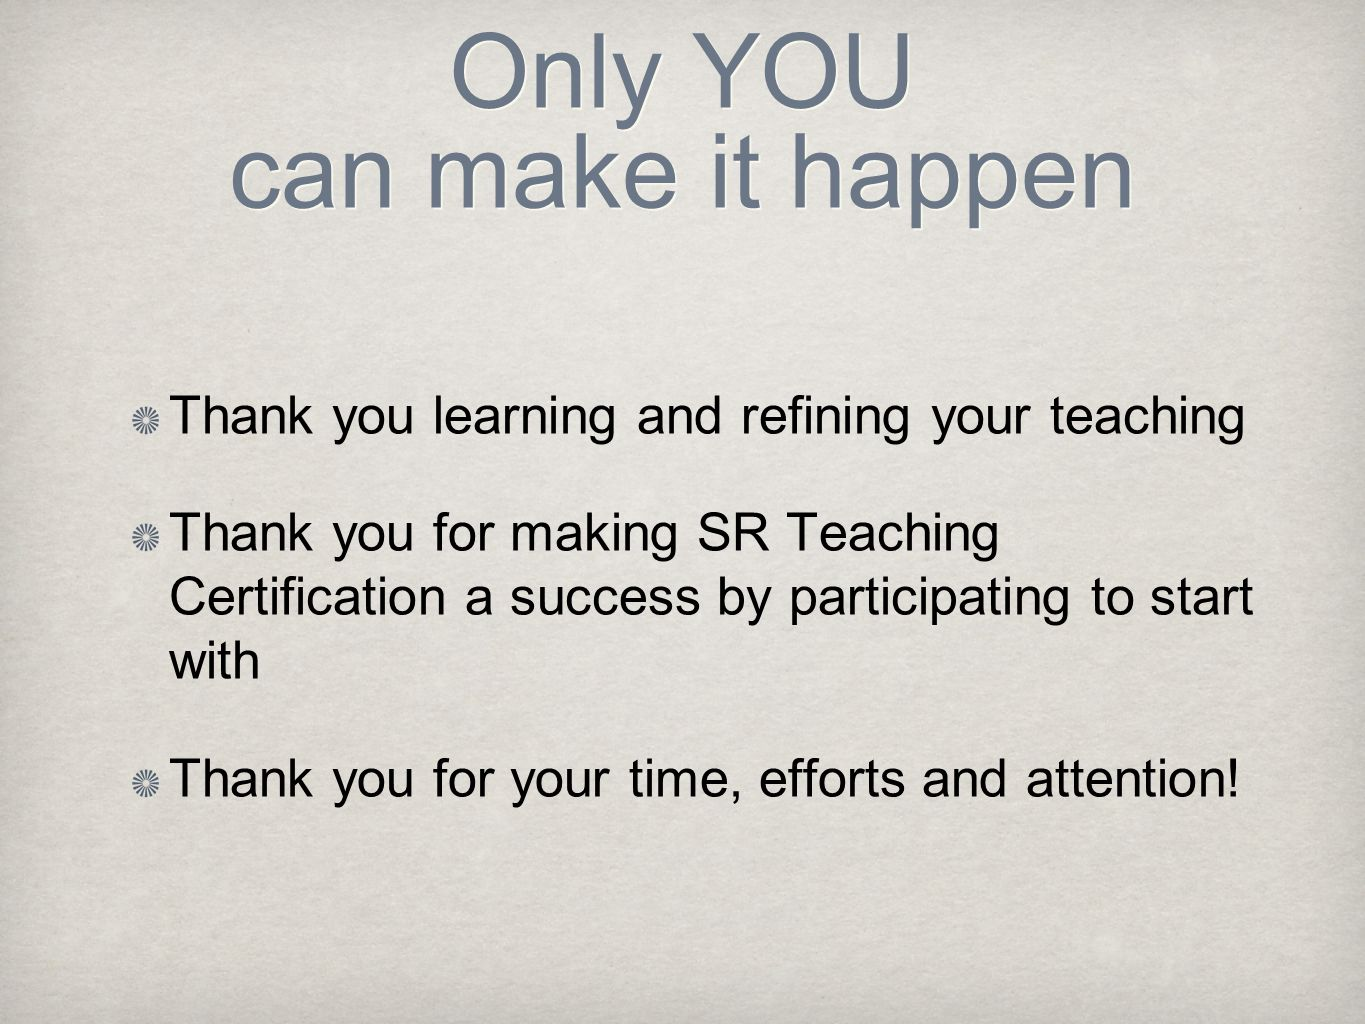 Only YOU can make it happen Thank you learning and refining your teaching Thank you for making SR Teaching Certification a success by participating to start with Thank you for your time, efforts and attention!